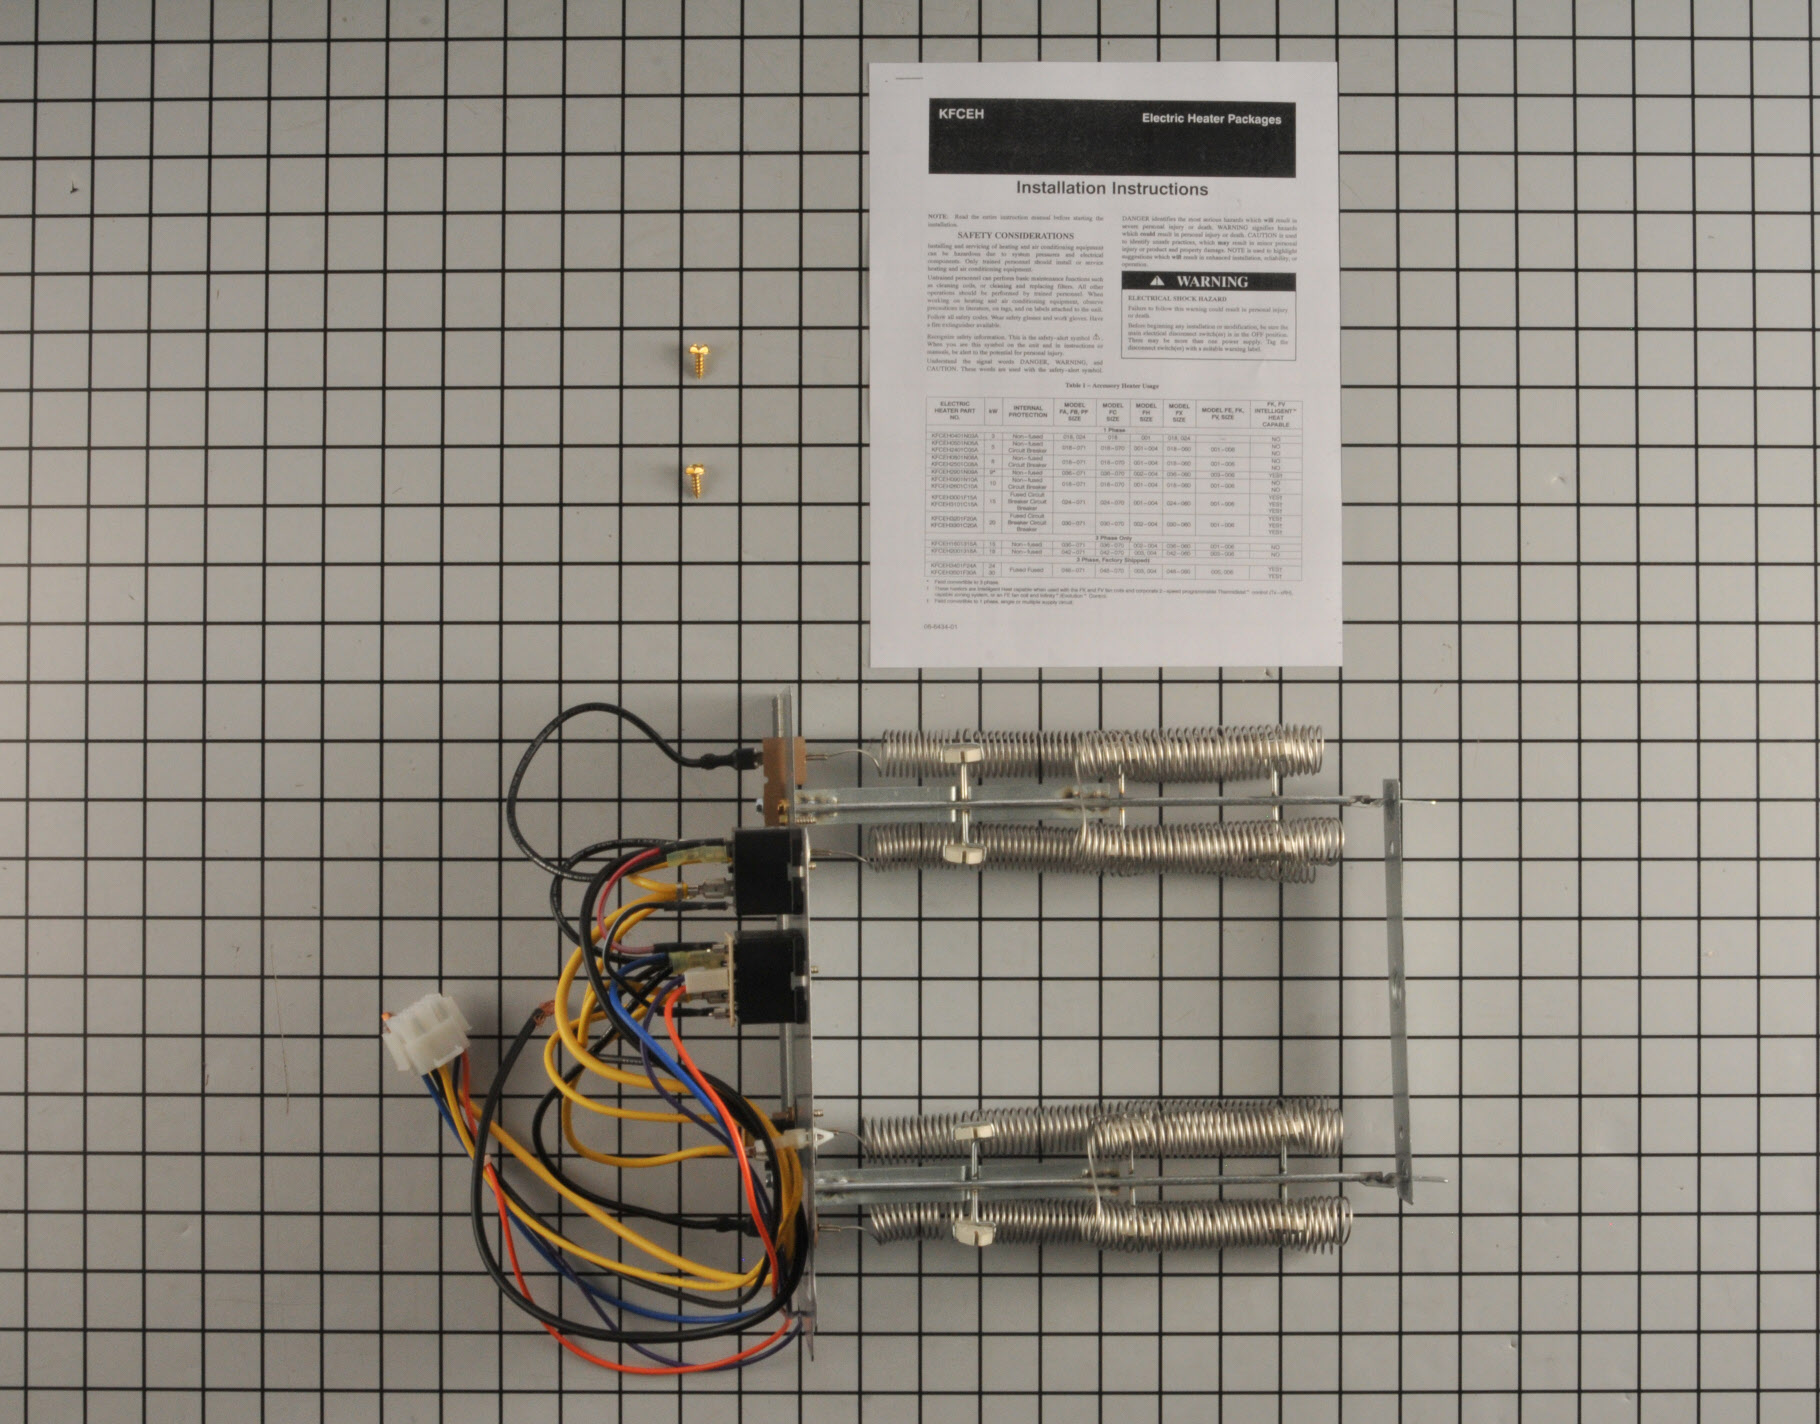 Carrier Kfceh0901n10 Central Air Conditioner Part